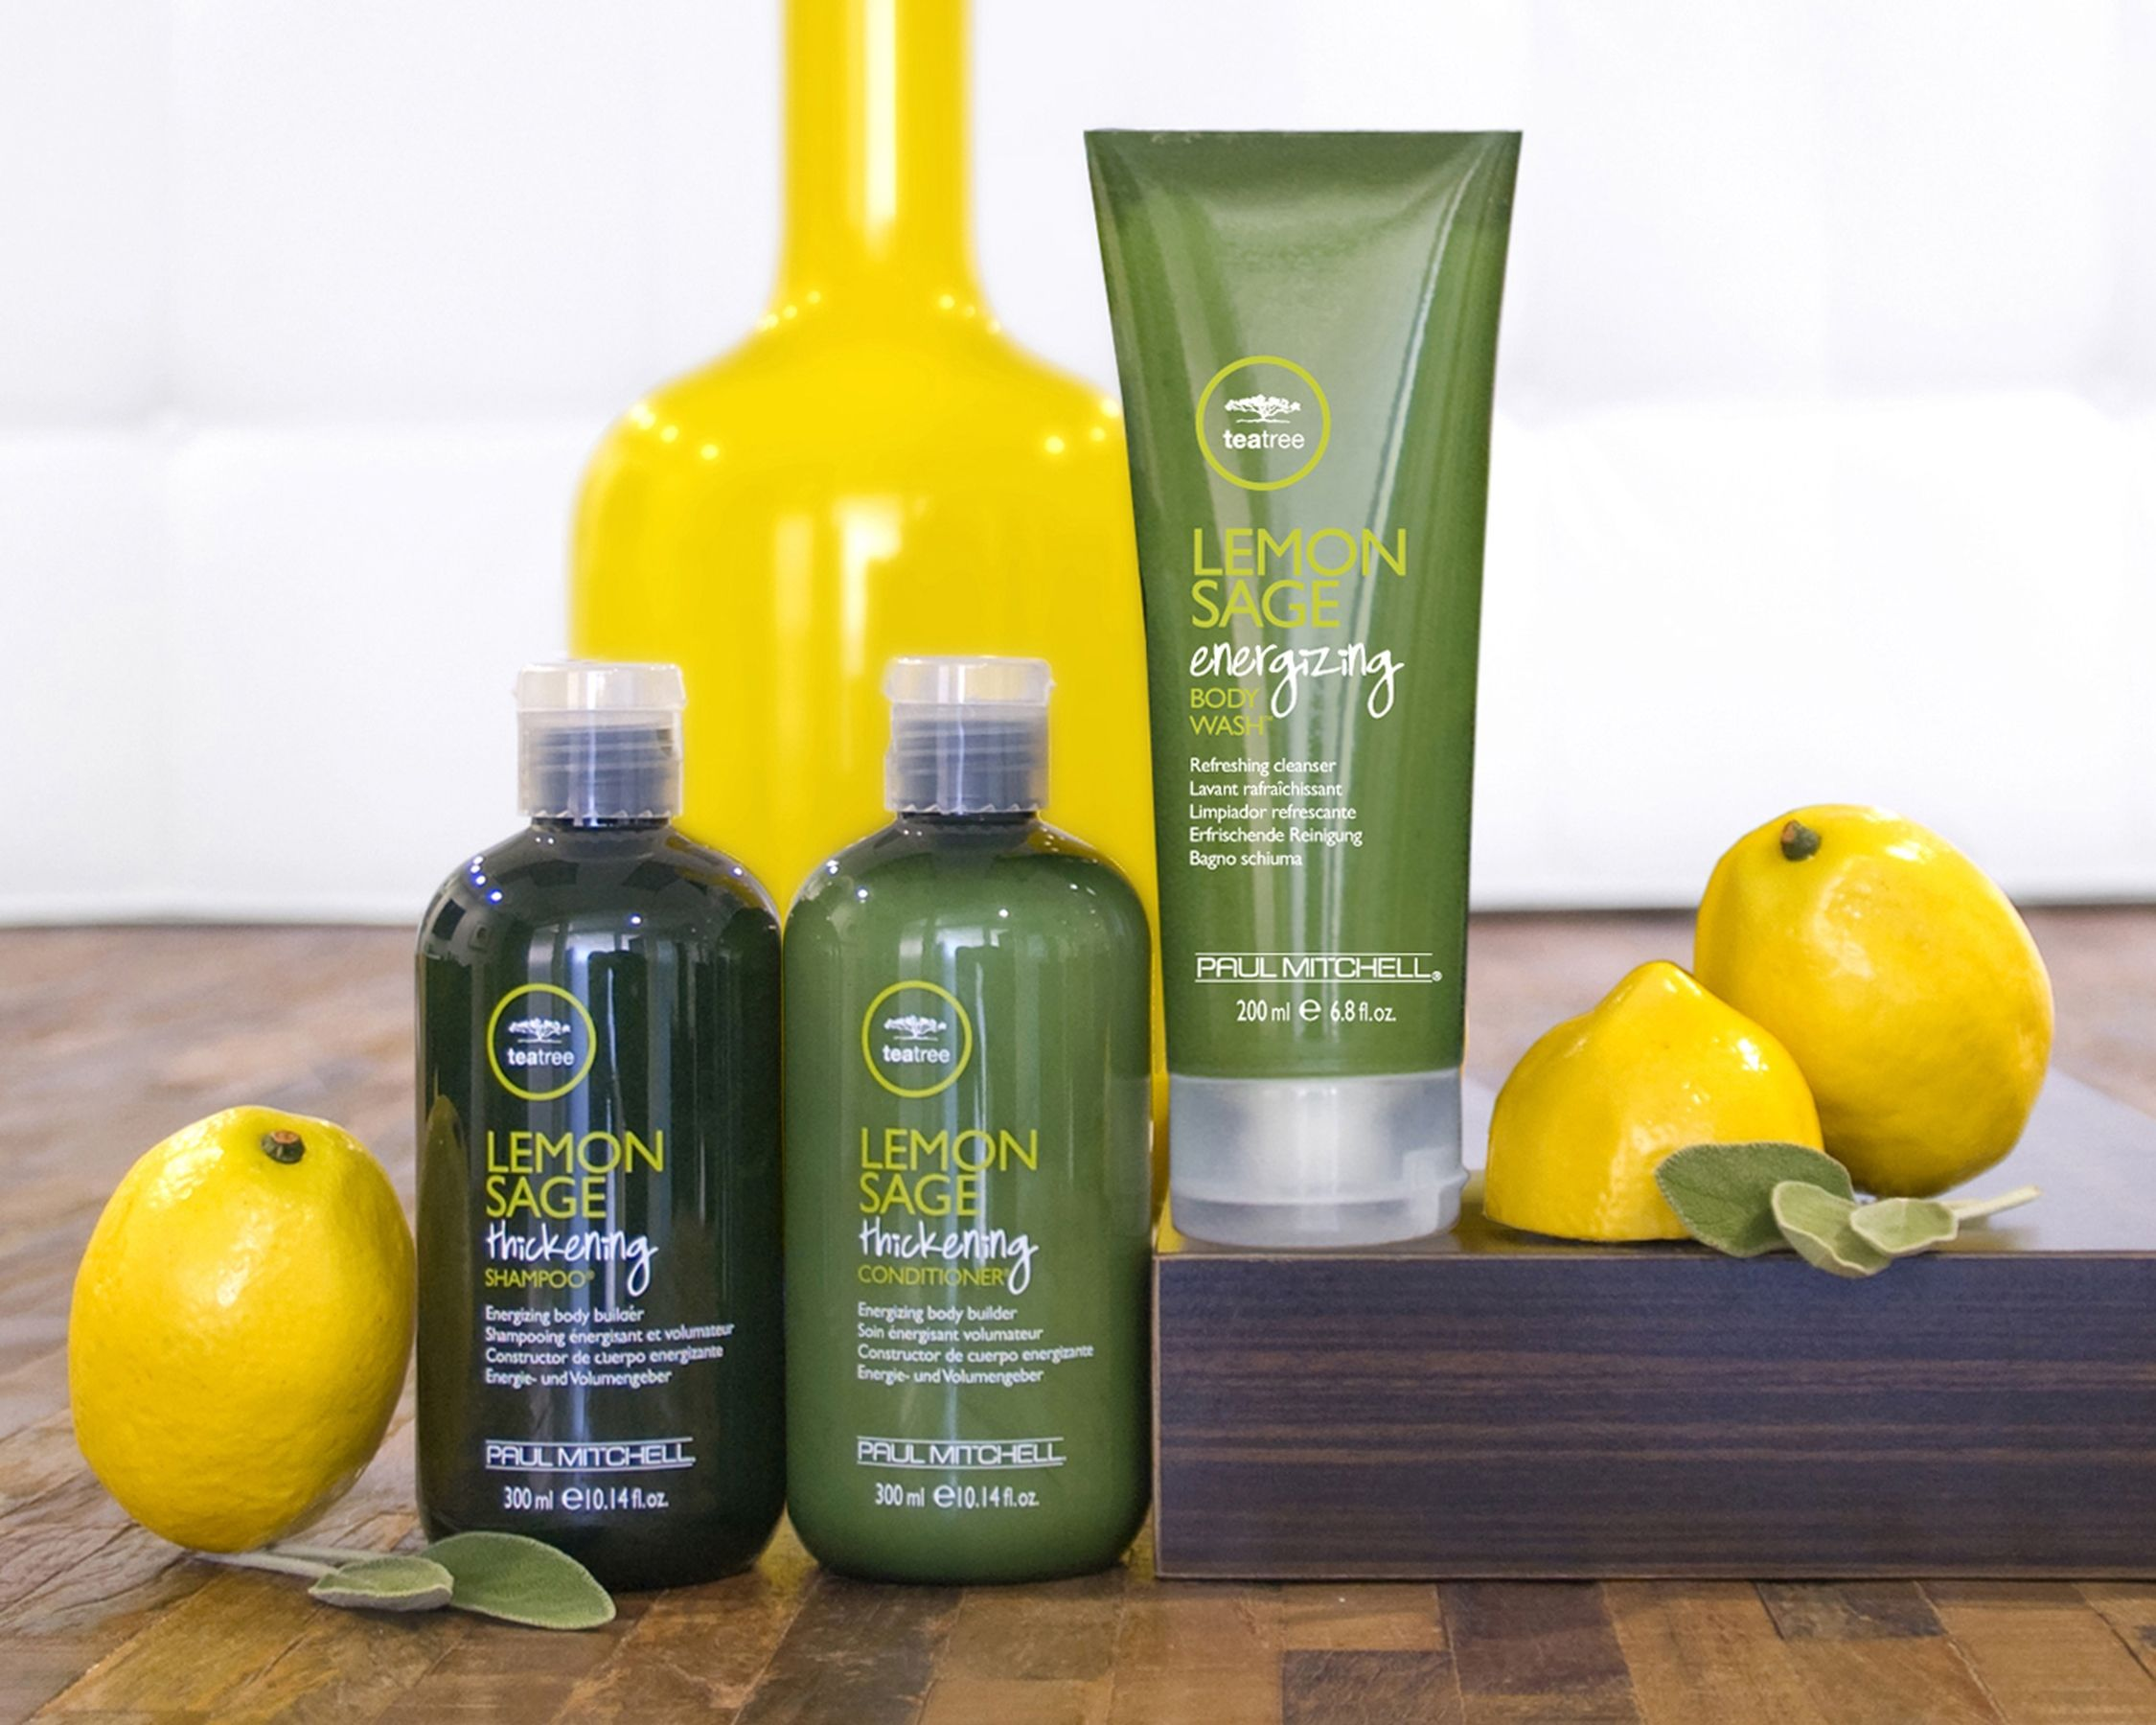 Paul Mitchell Lemon Sage Let sunny citrus be your morning